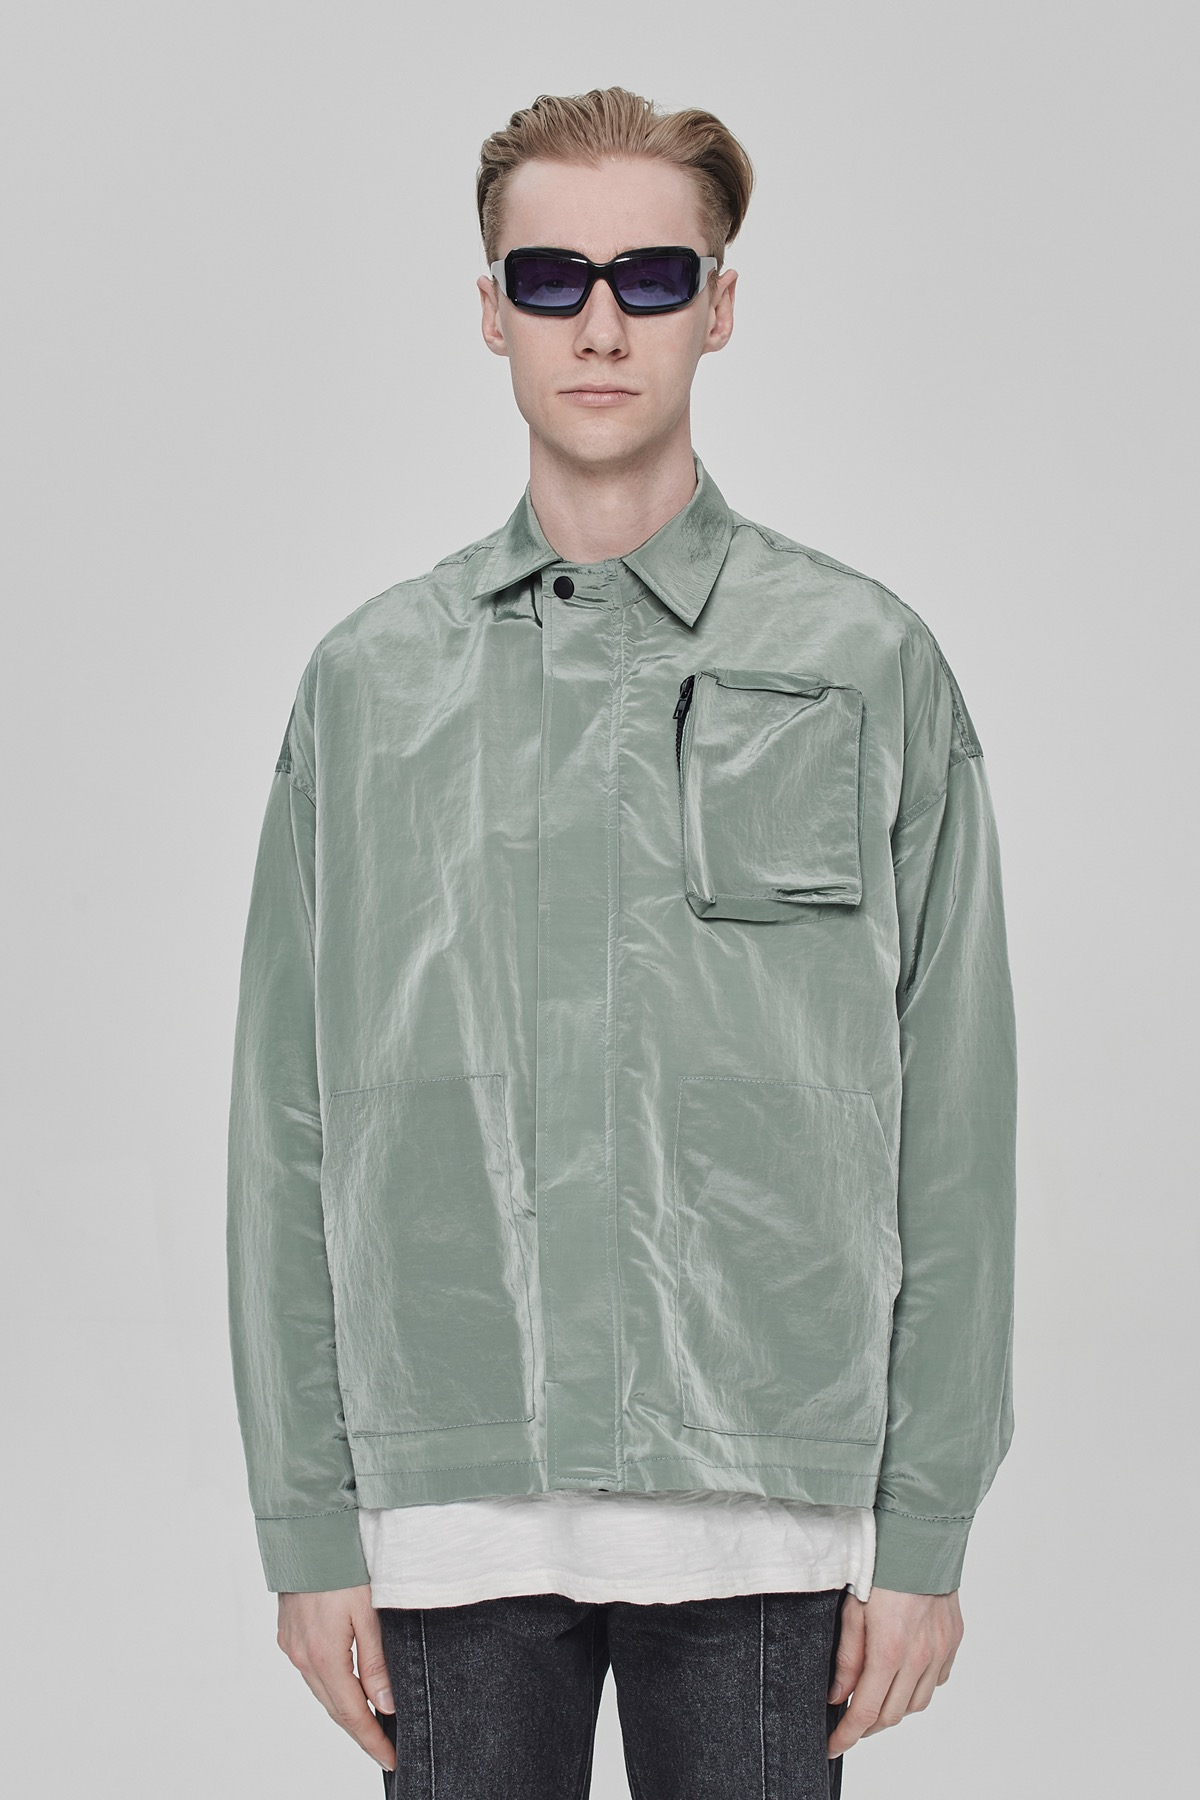 MINT METAL POCKET JACKET V2